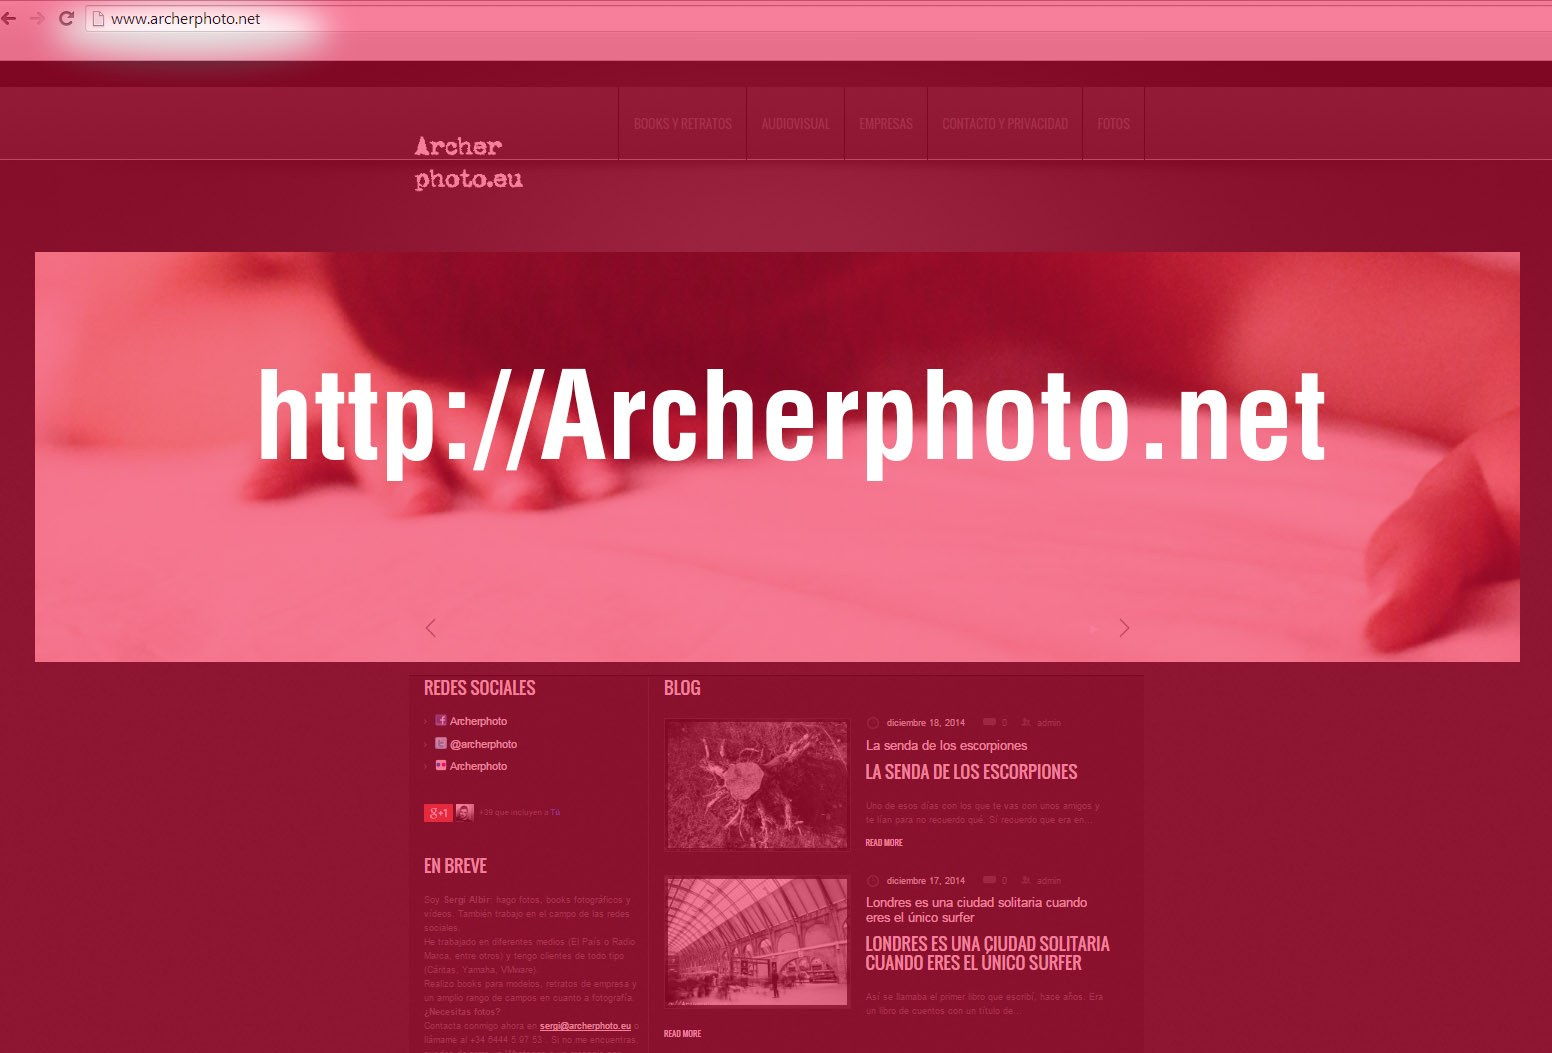 Archerphoto.net